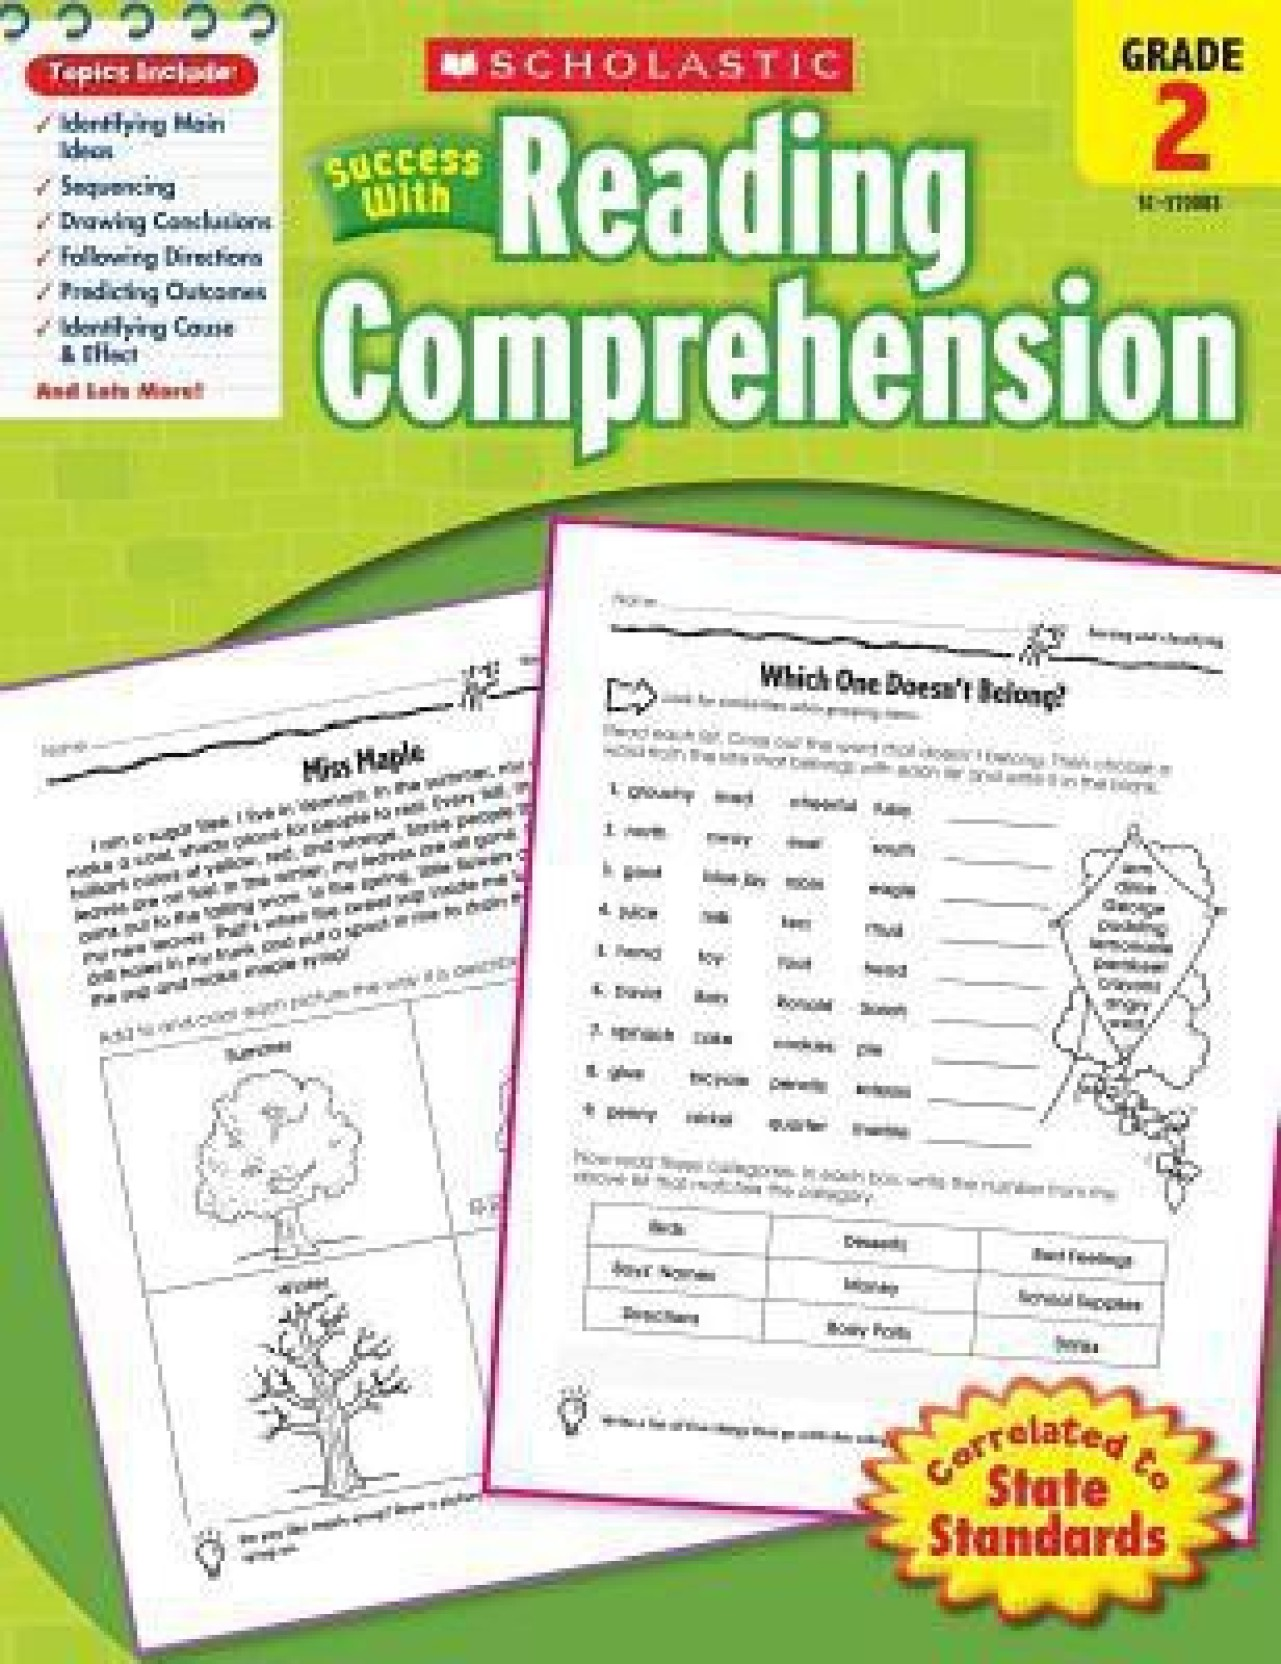 Scholastic Success With Reading Comprehension, Grade 2. ADD TO CART